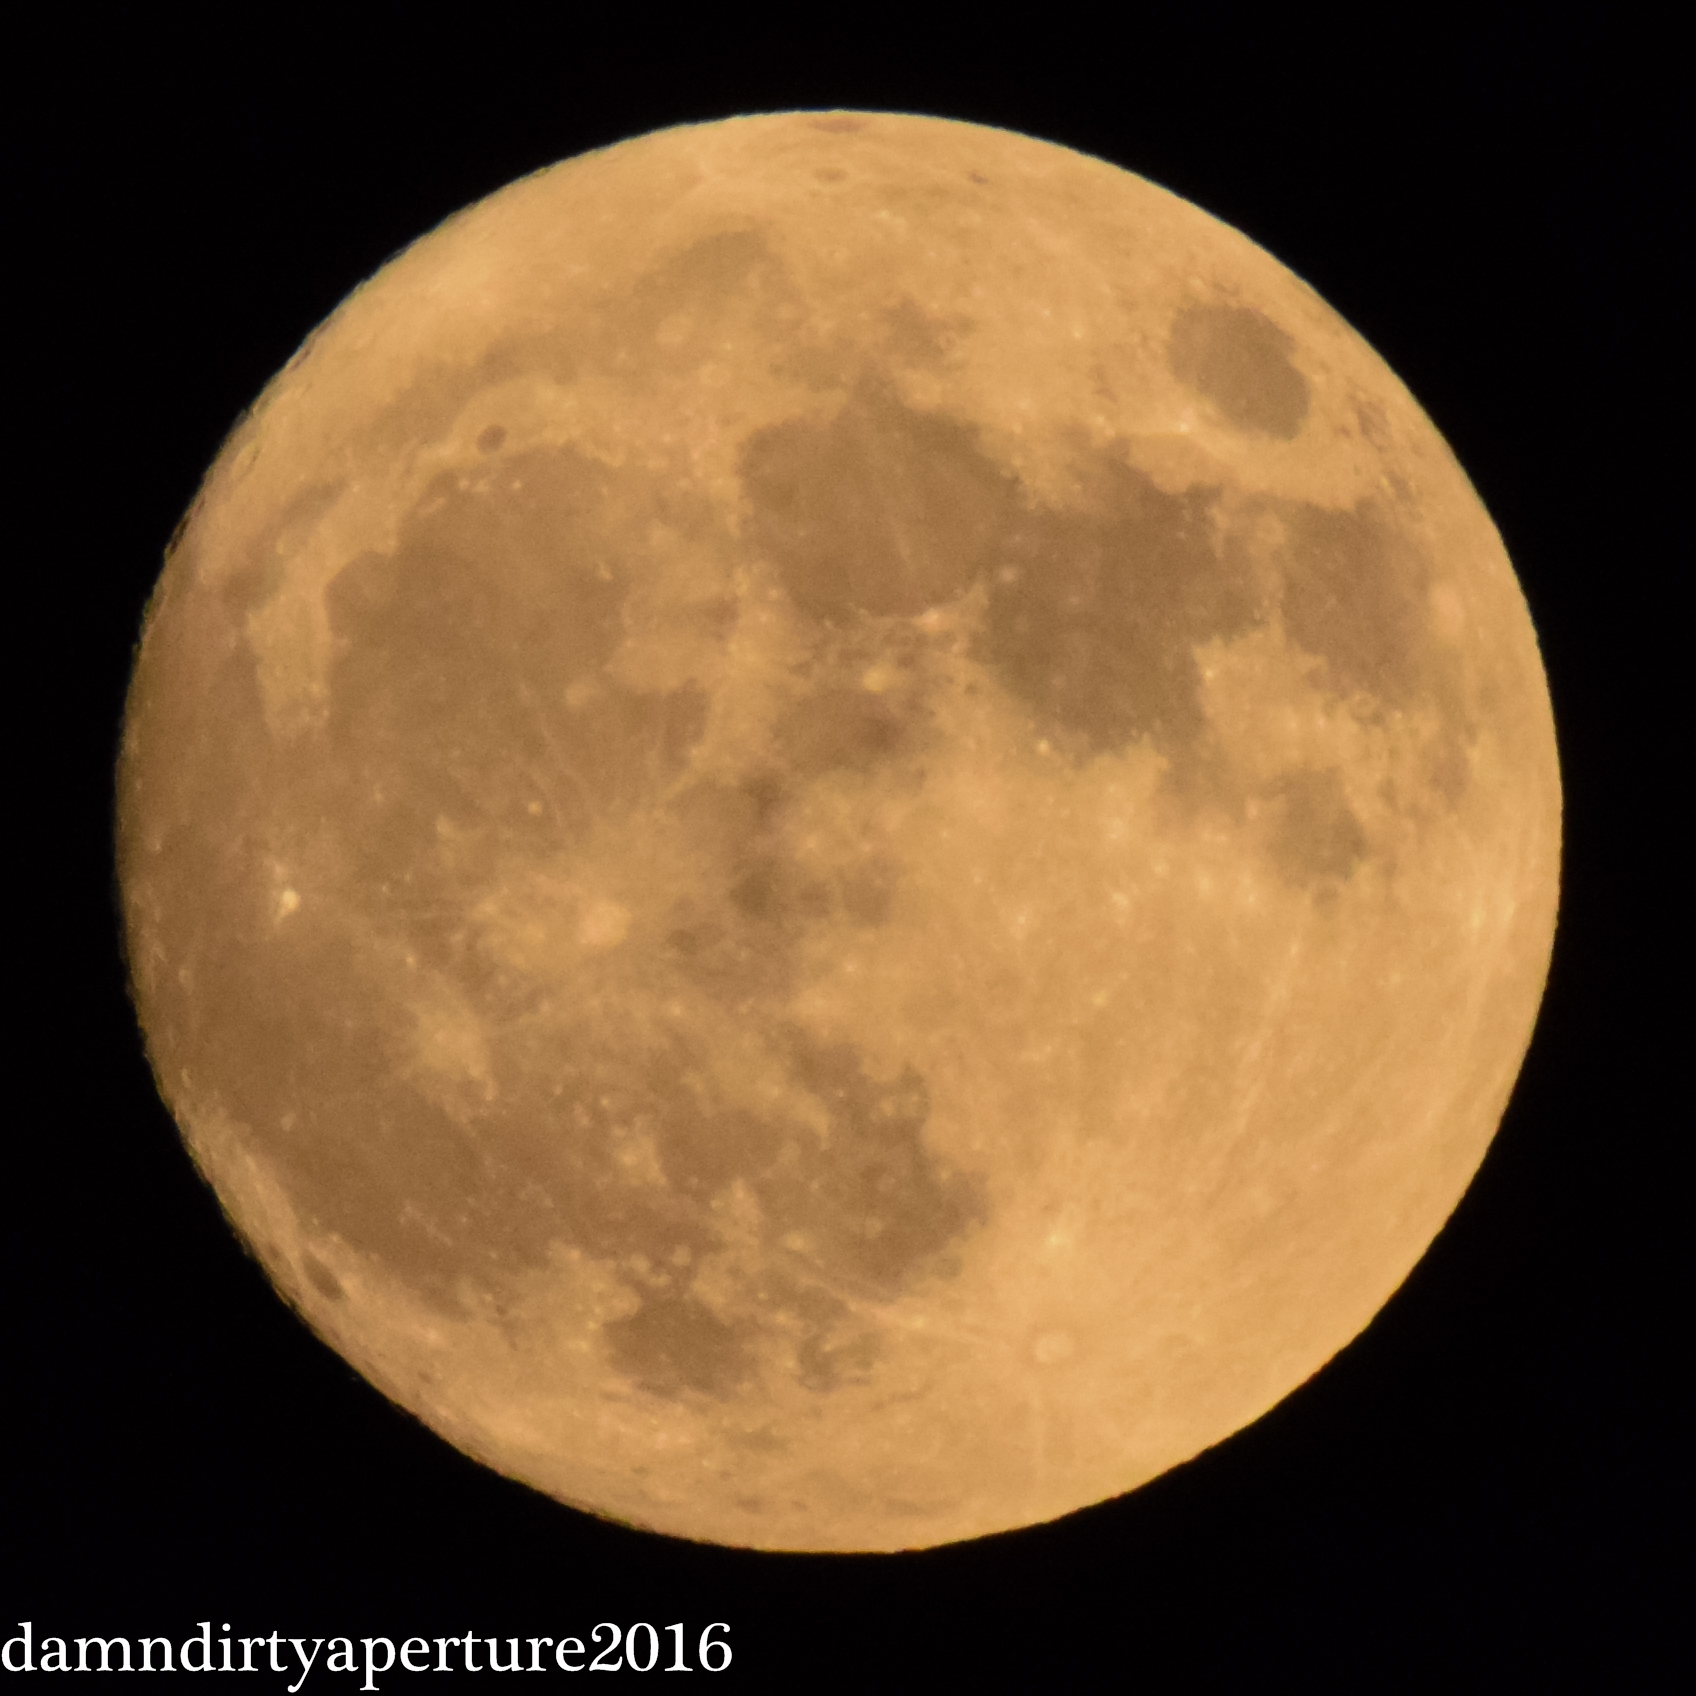 supermoon-ceragno-11-13-16